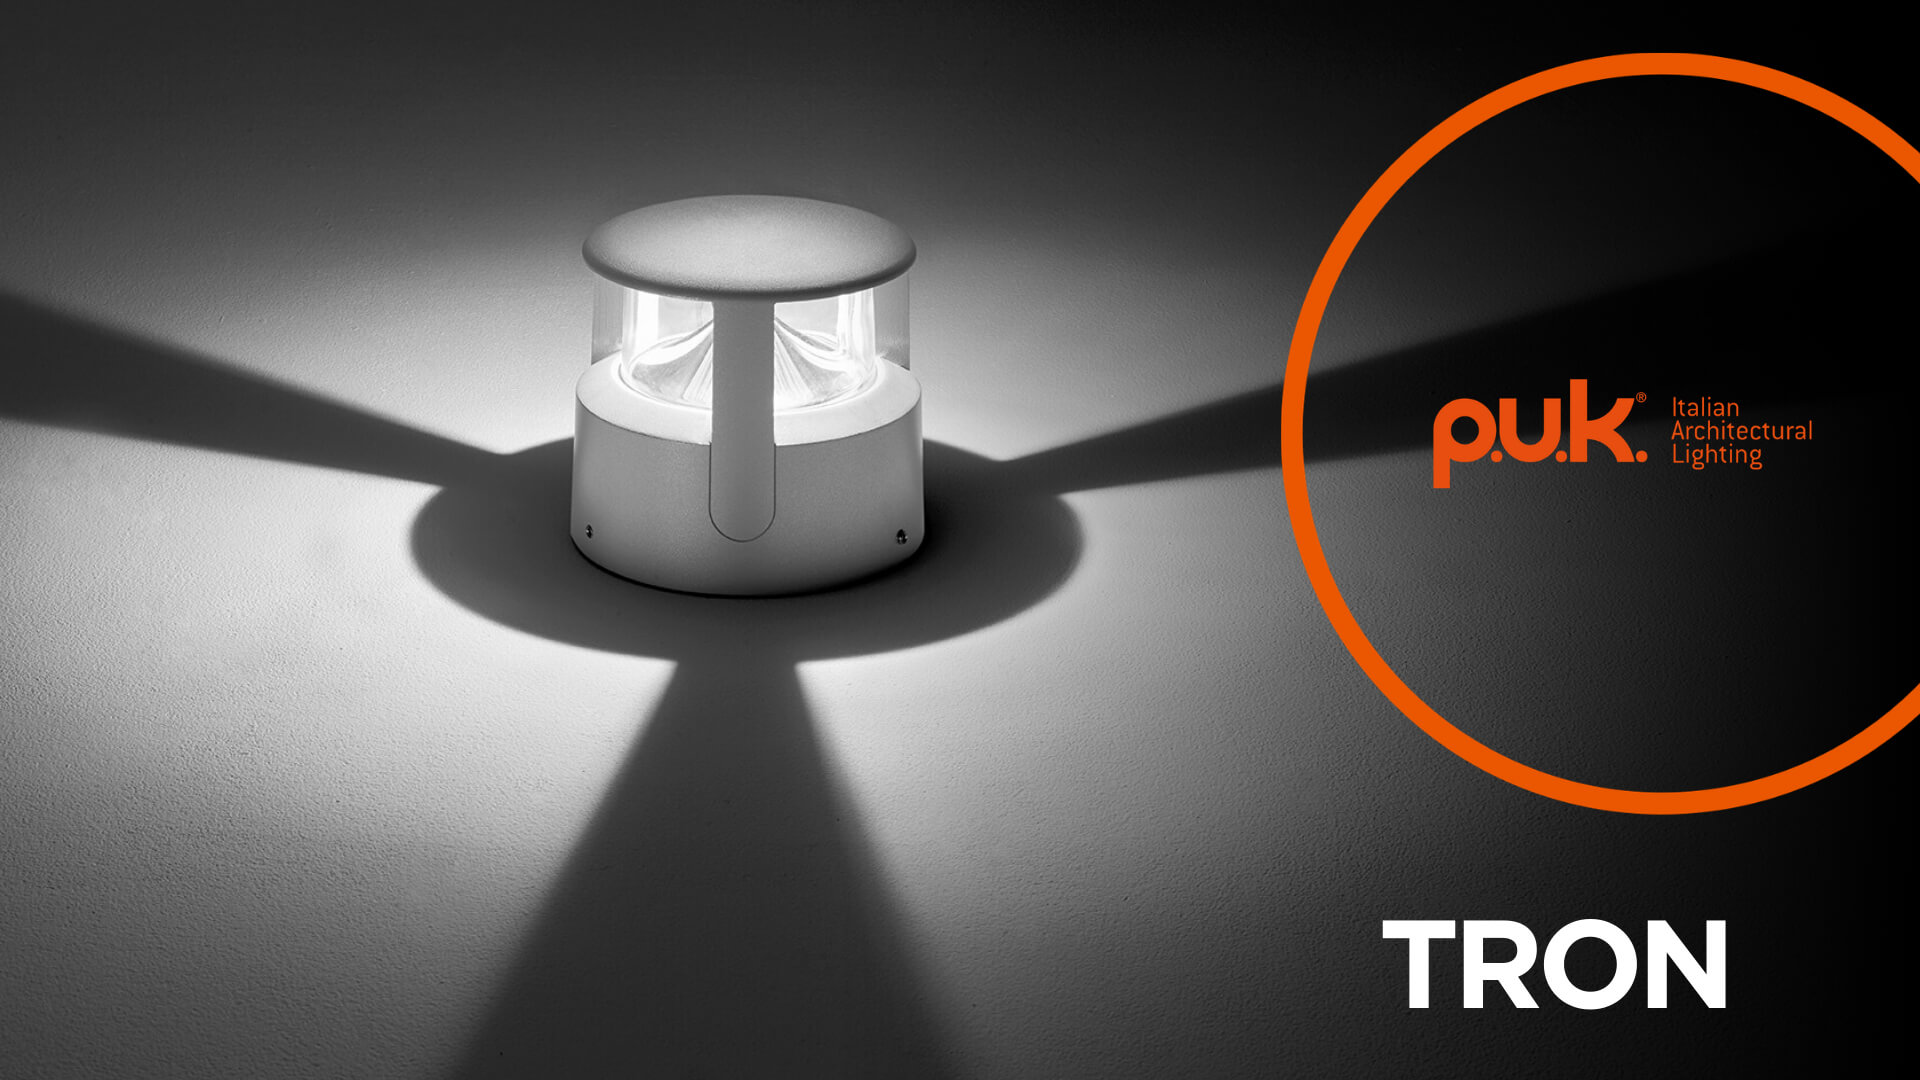 PUK bollards: introducing Tron